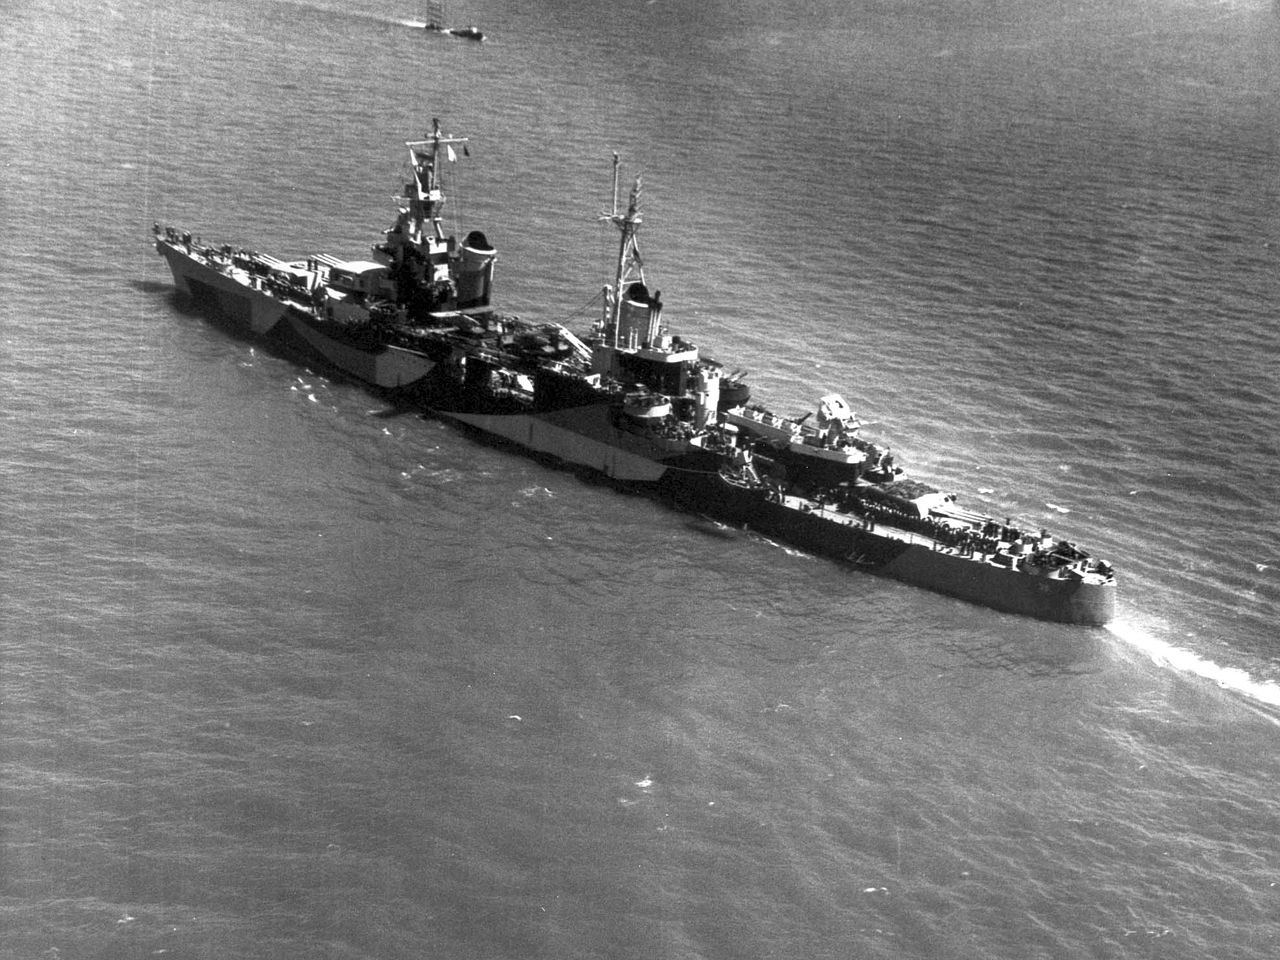 The USS Indianapolis fitted for war, in 1944